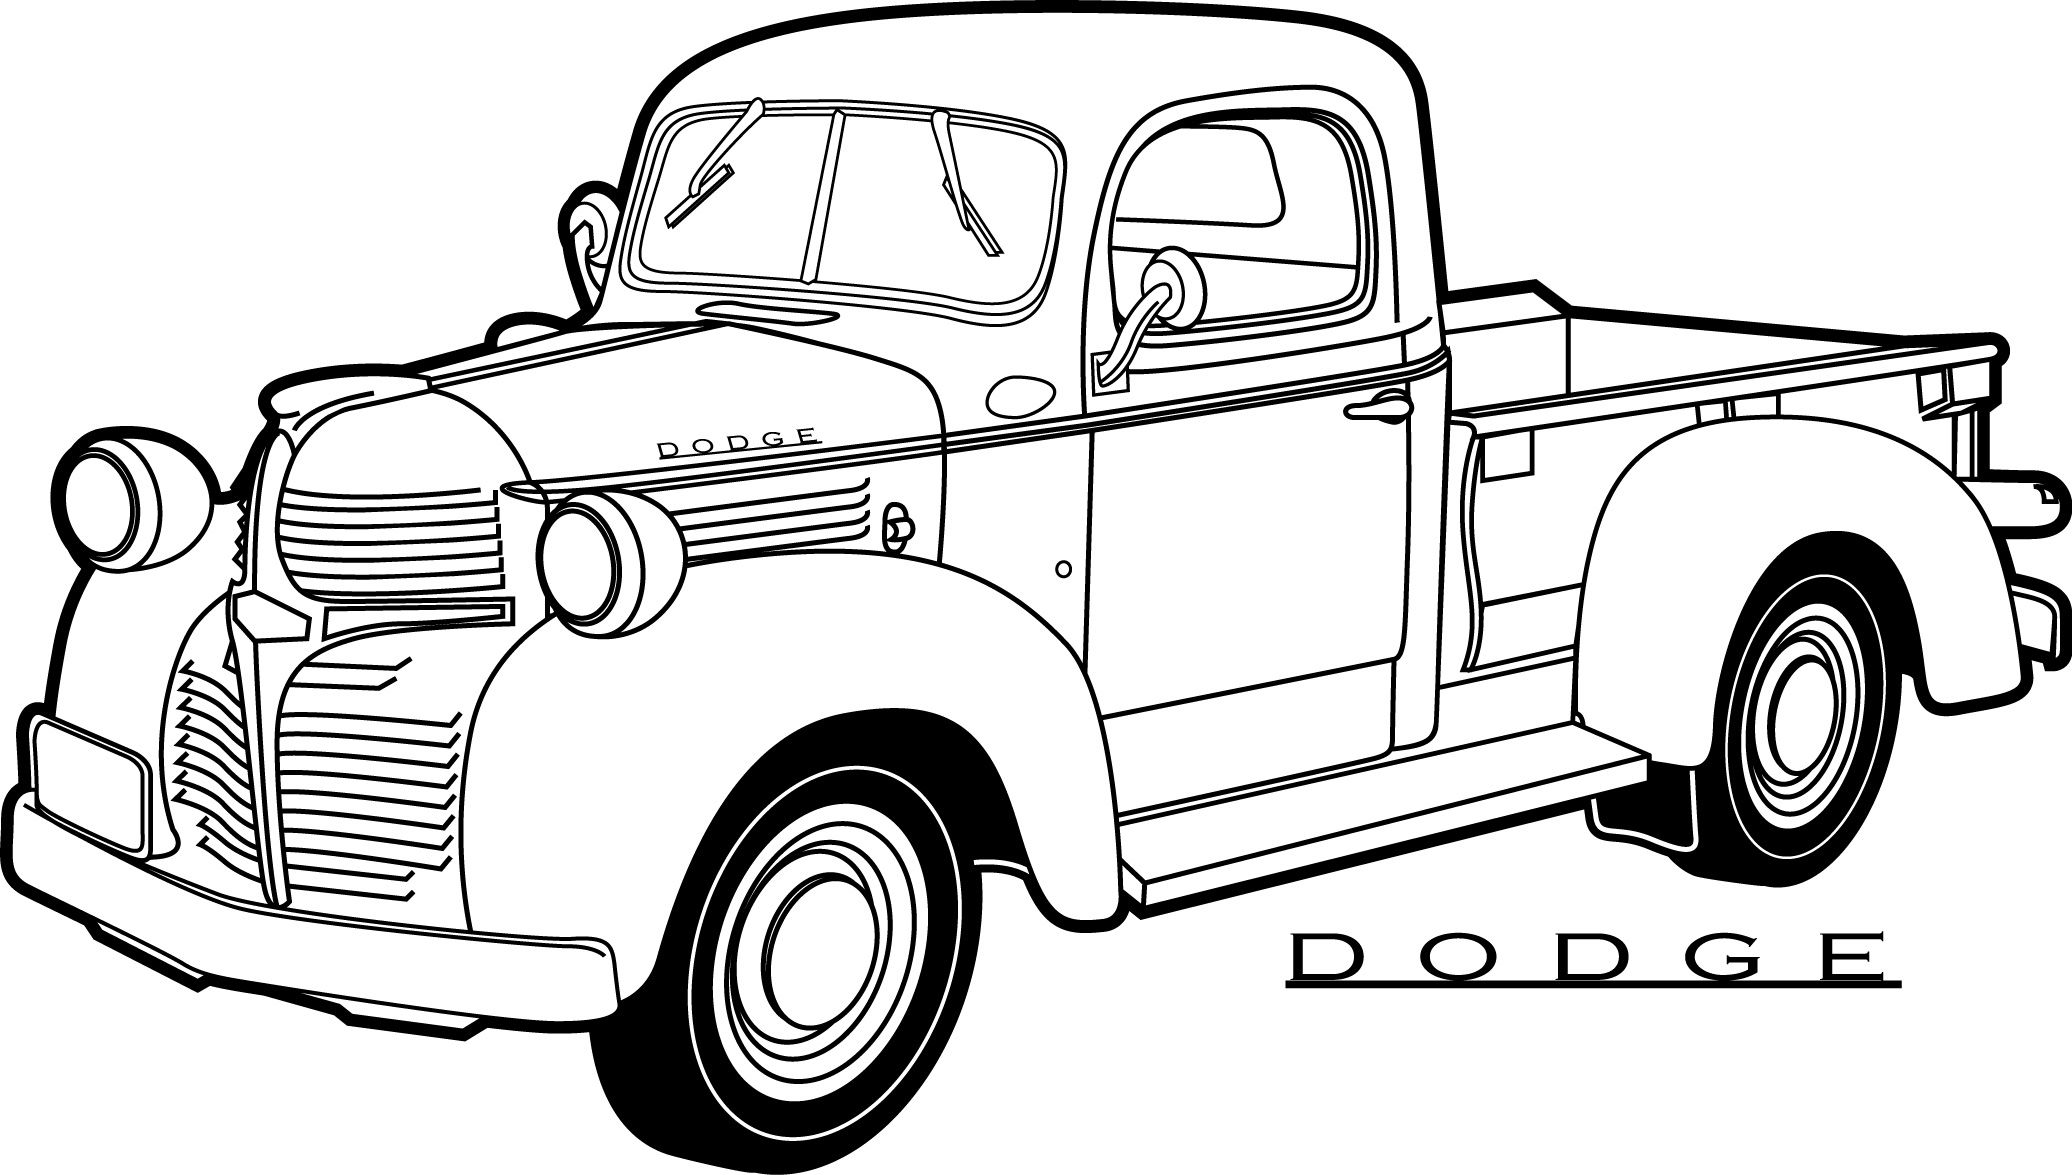 printable truck coloring pages pickup truck coloring page free pickup truck online truck printable coloring pages